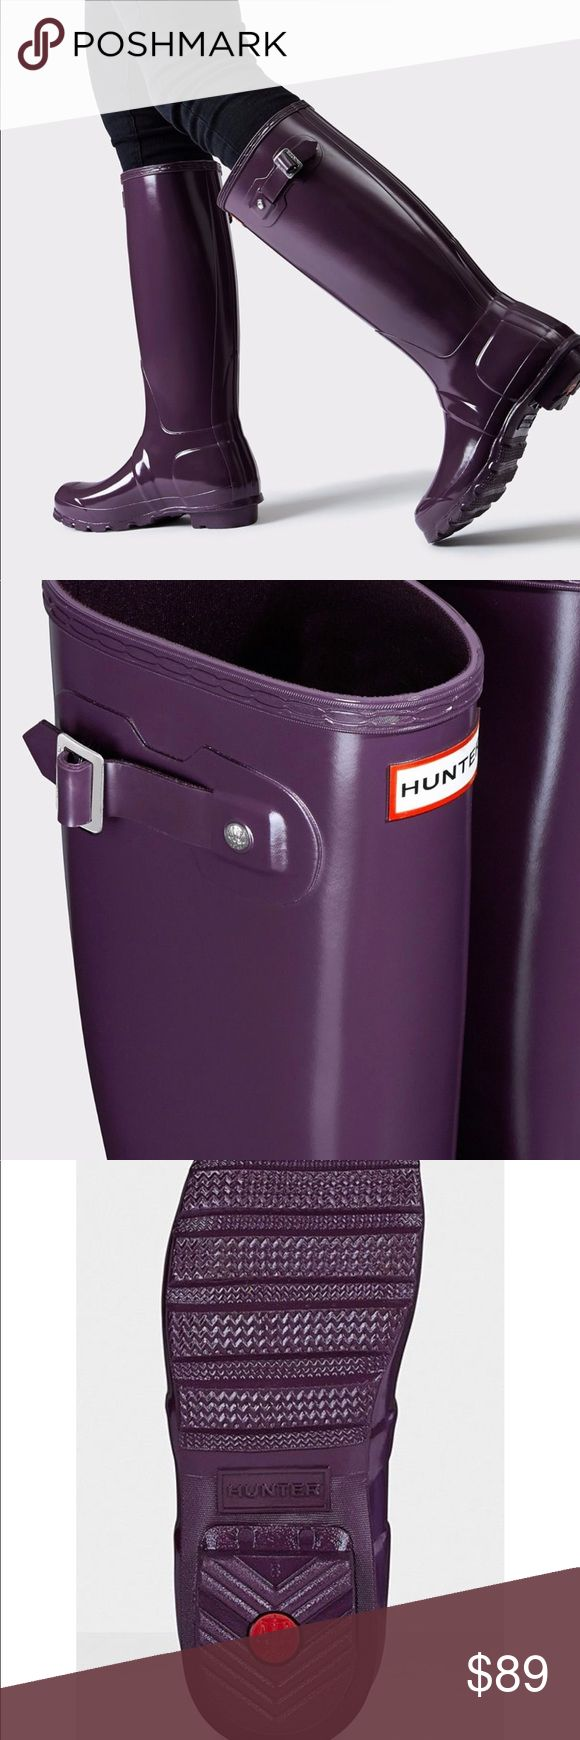 Hunters purple rain boots Worn 1 time for 1 hour - excellent condition Hunter Boots Shoes Winter & Rain Boots